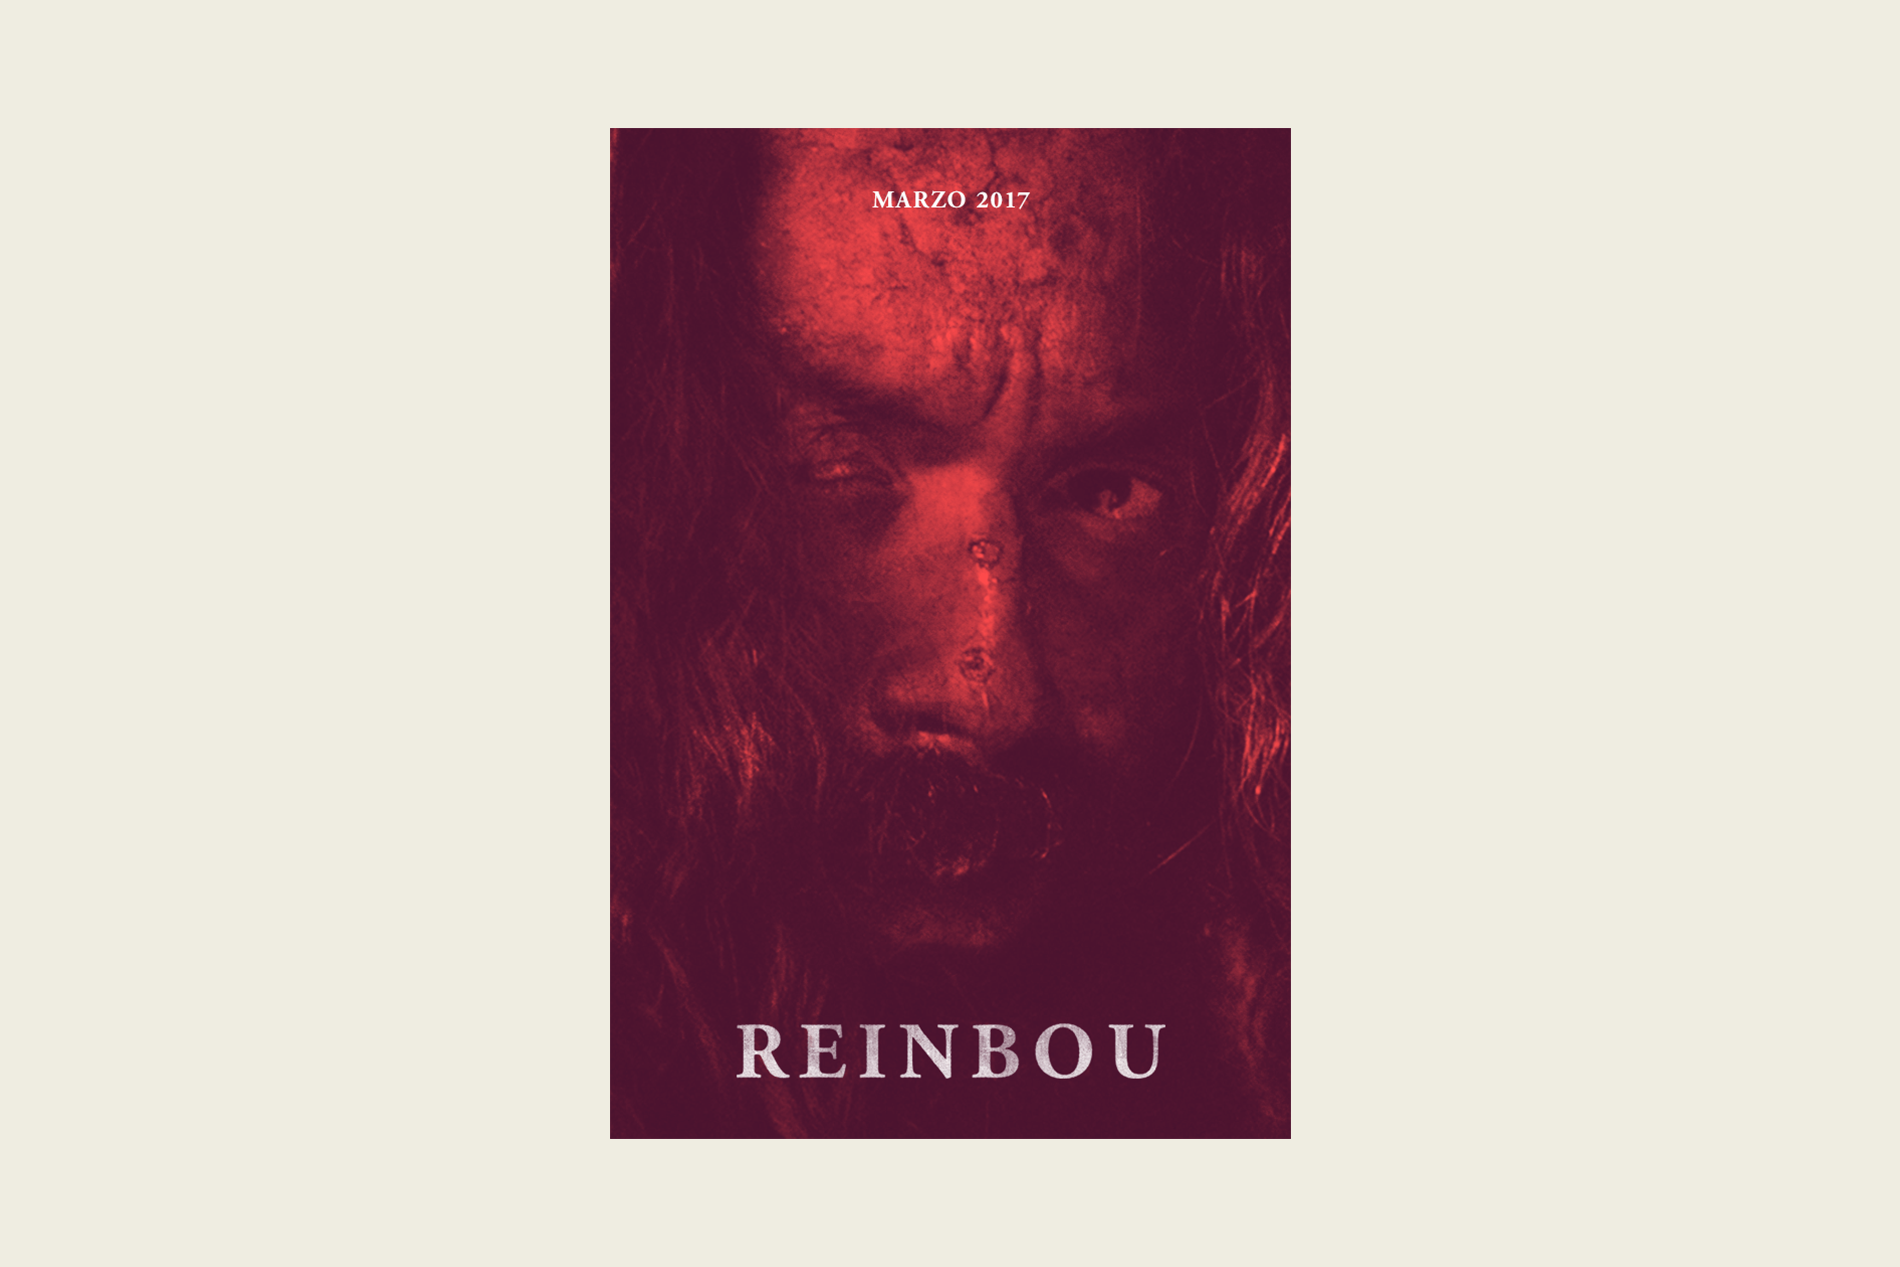 Reinbou_Project4_Reinbou-copy-2.png